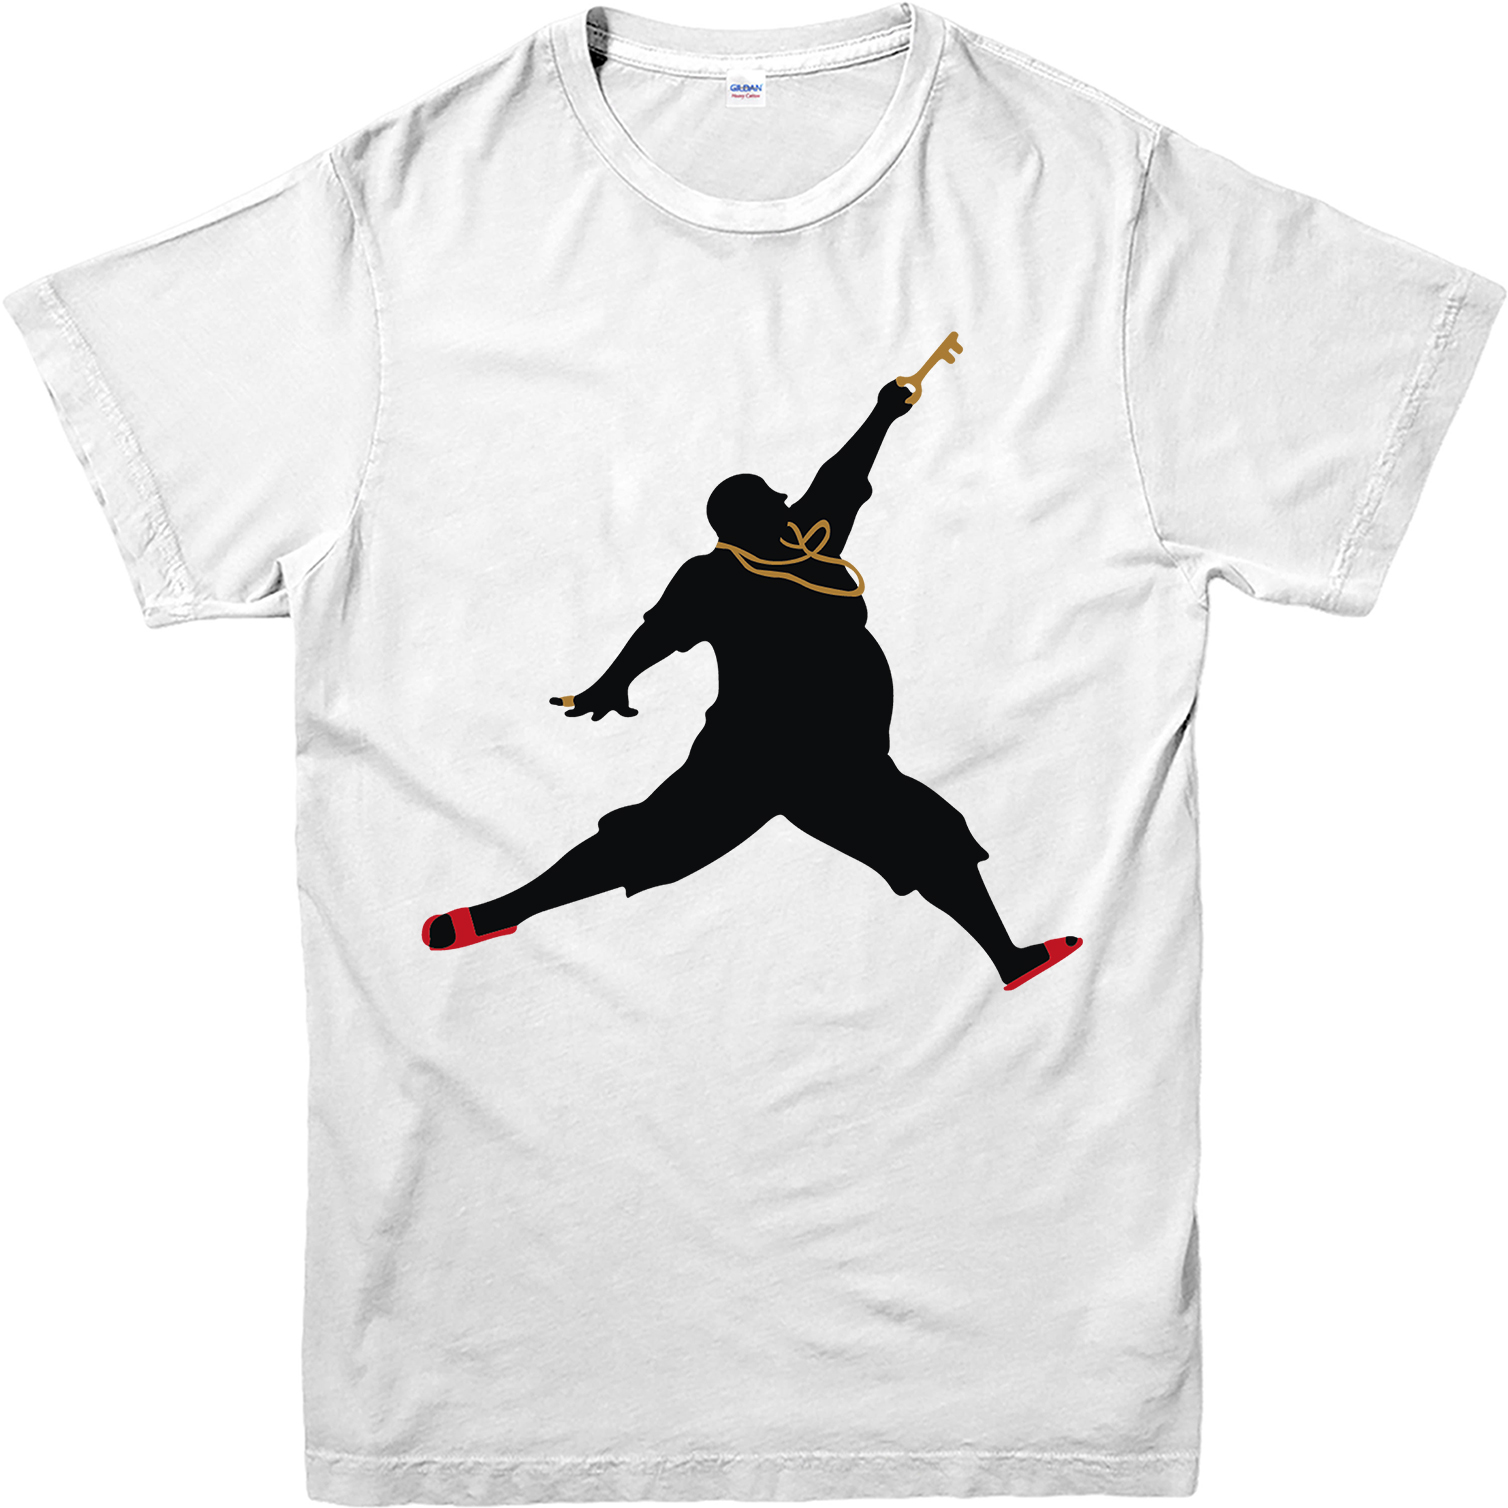 Dj khaled t shirt jordan logo spoof t shirt inspired Dj t shirt design